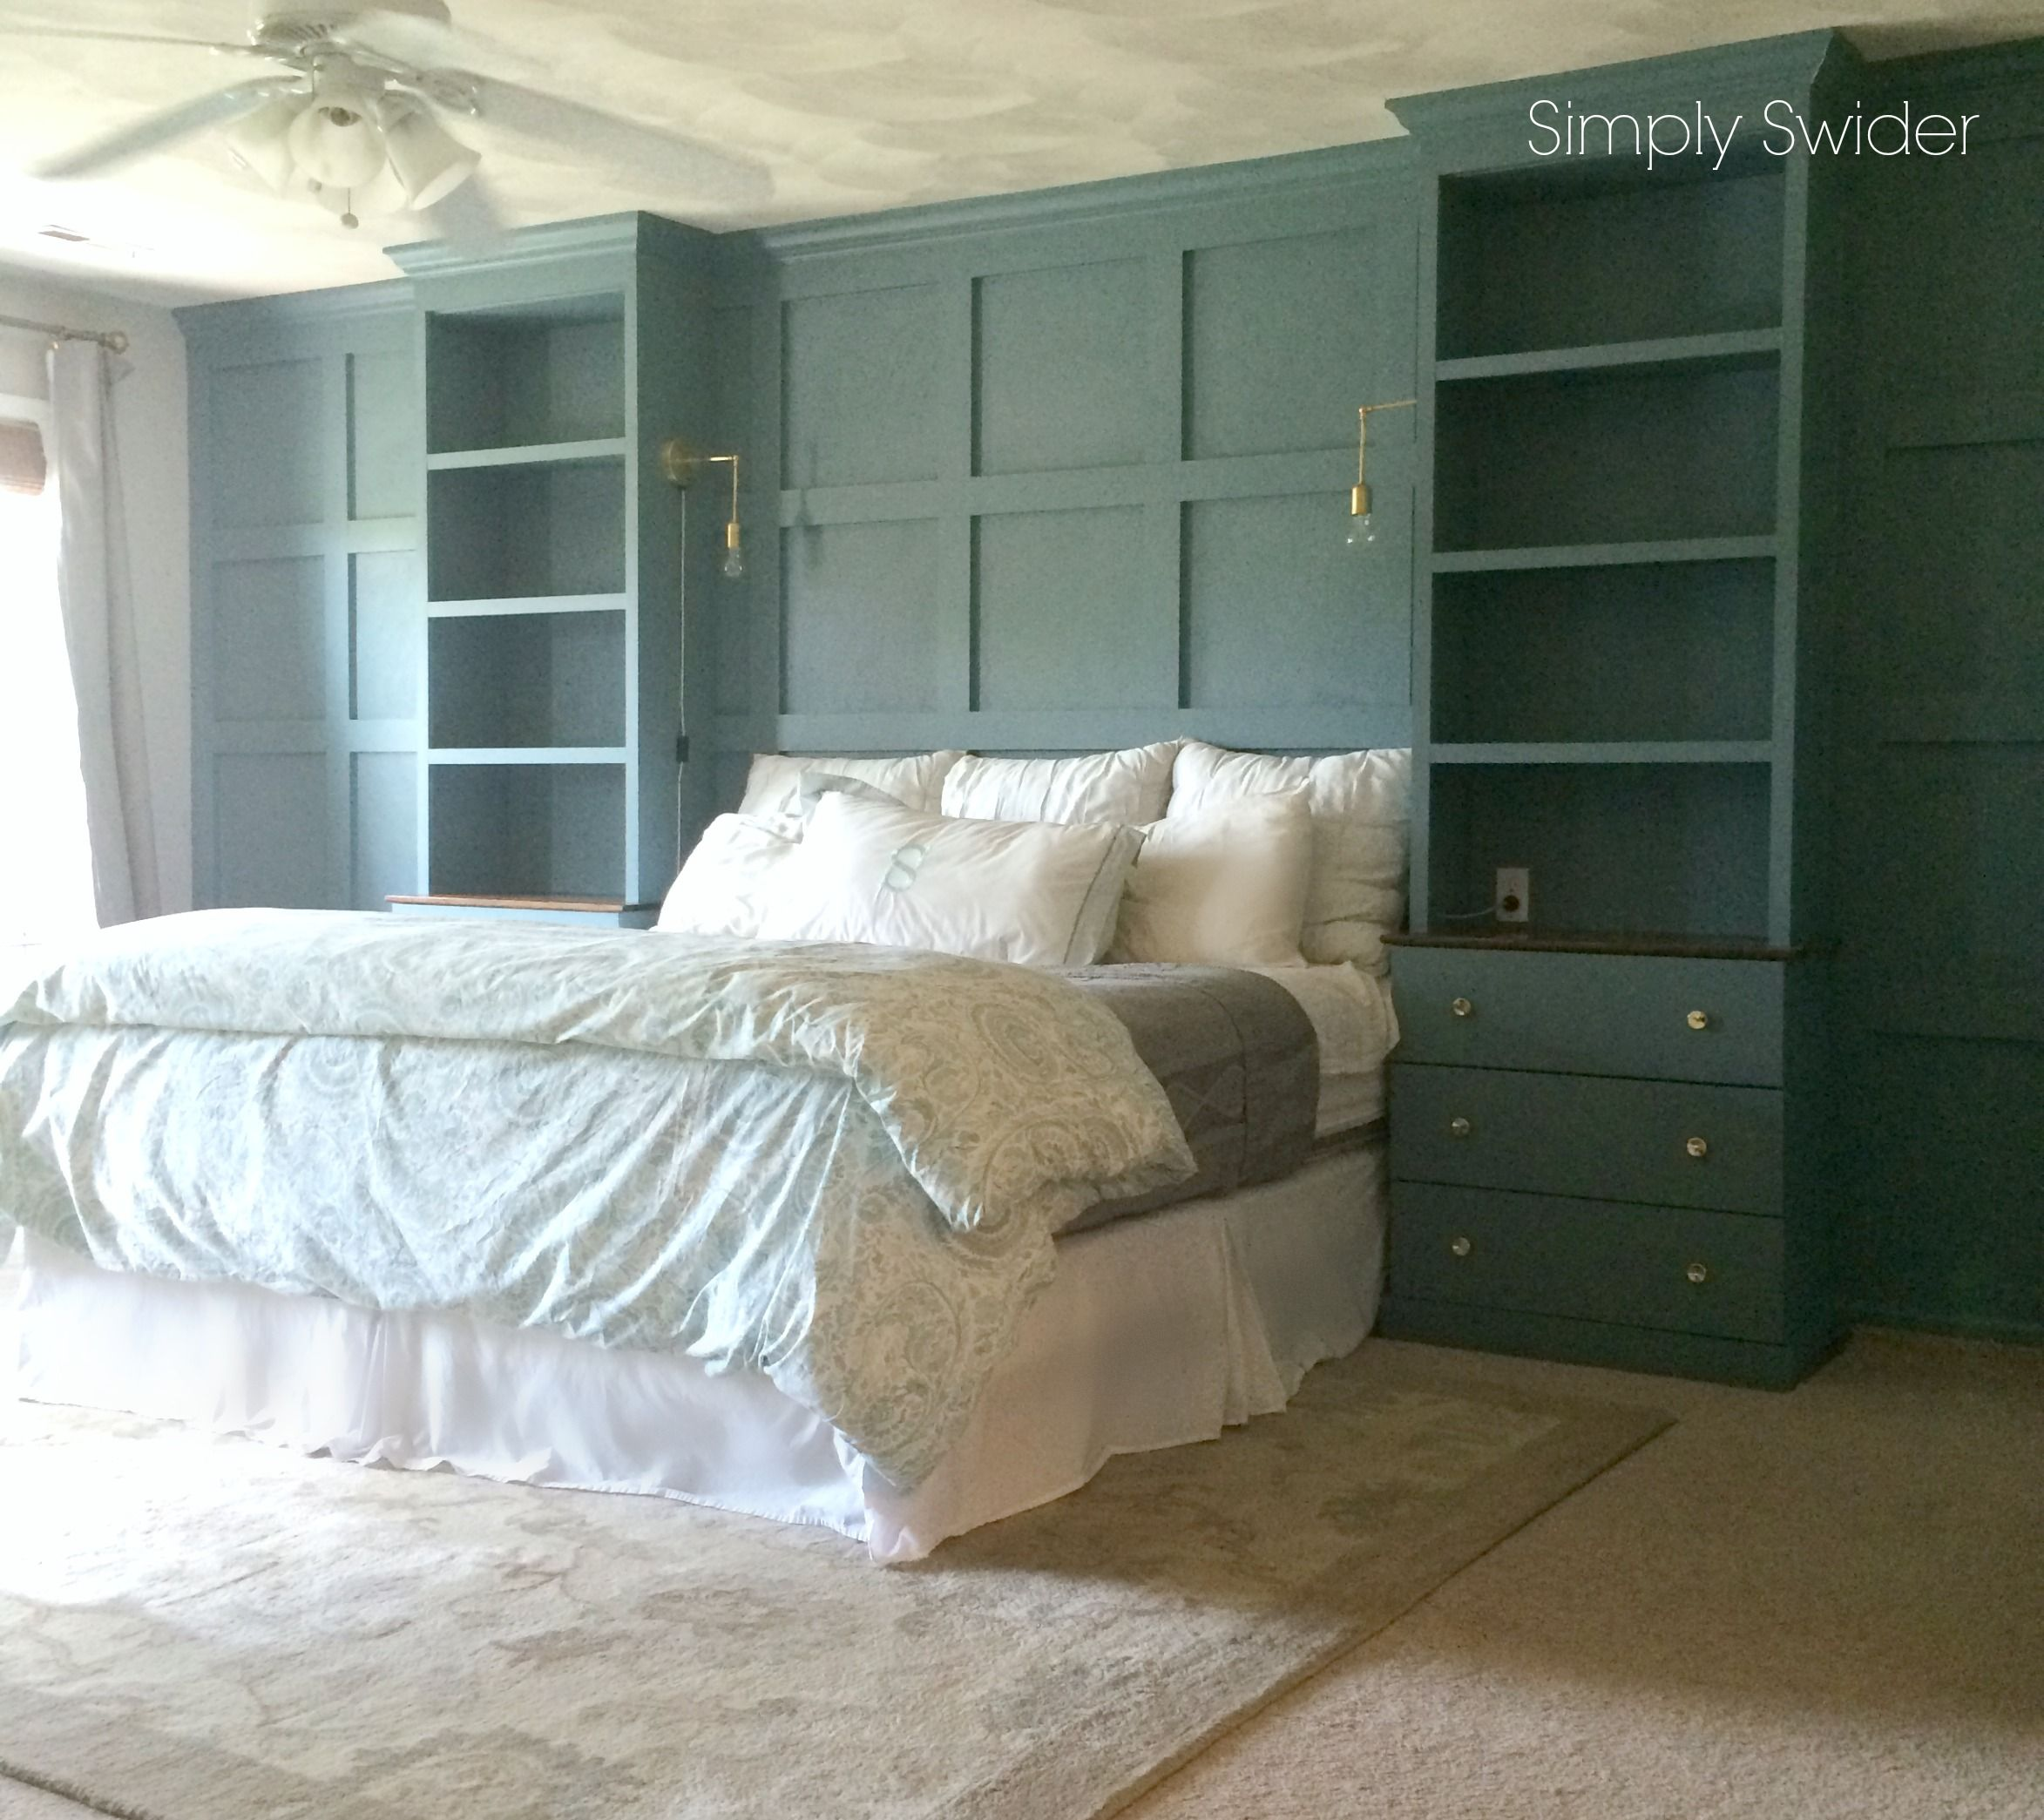 diy built ins using an ikea tarva hack around a bed with. Black Bedroom Furniture Sets. Home Design Ideas